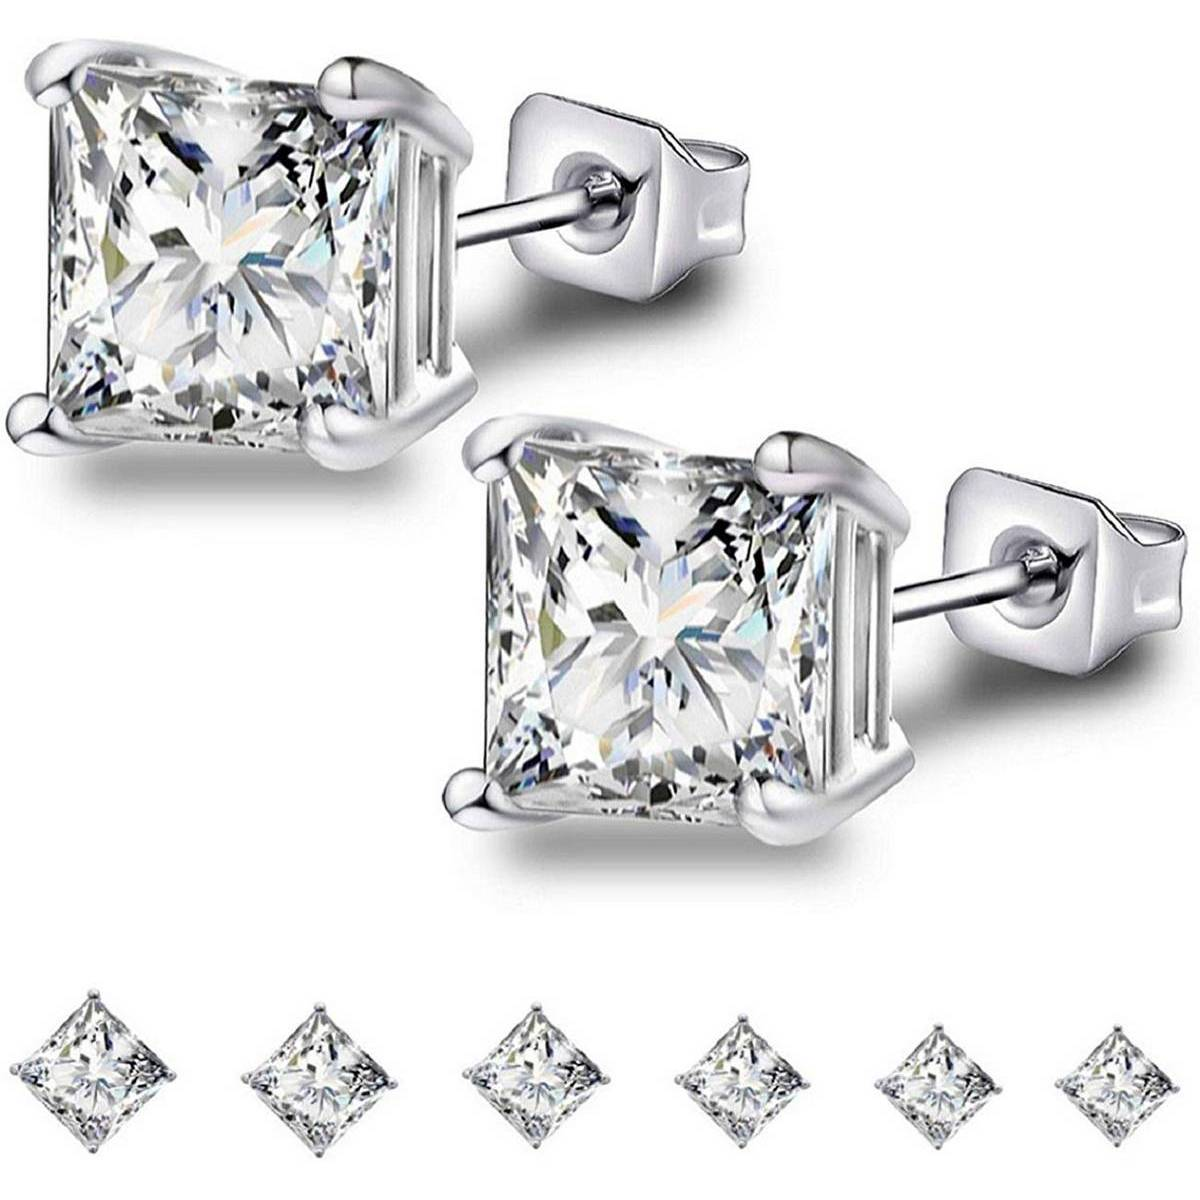 3mm Sterling Silver Cubic Zirconia Stud Earrings Set Tiny Round Ball Sliver Plated Round Cut CZ Simulated Diamond Cartilage Studs for Girls Women (Unisex)